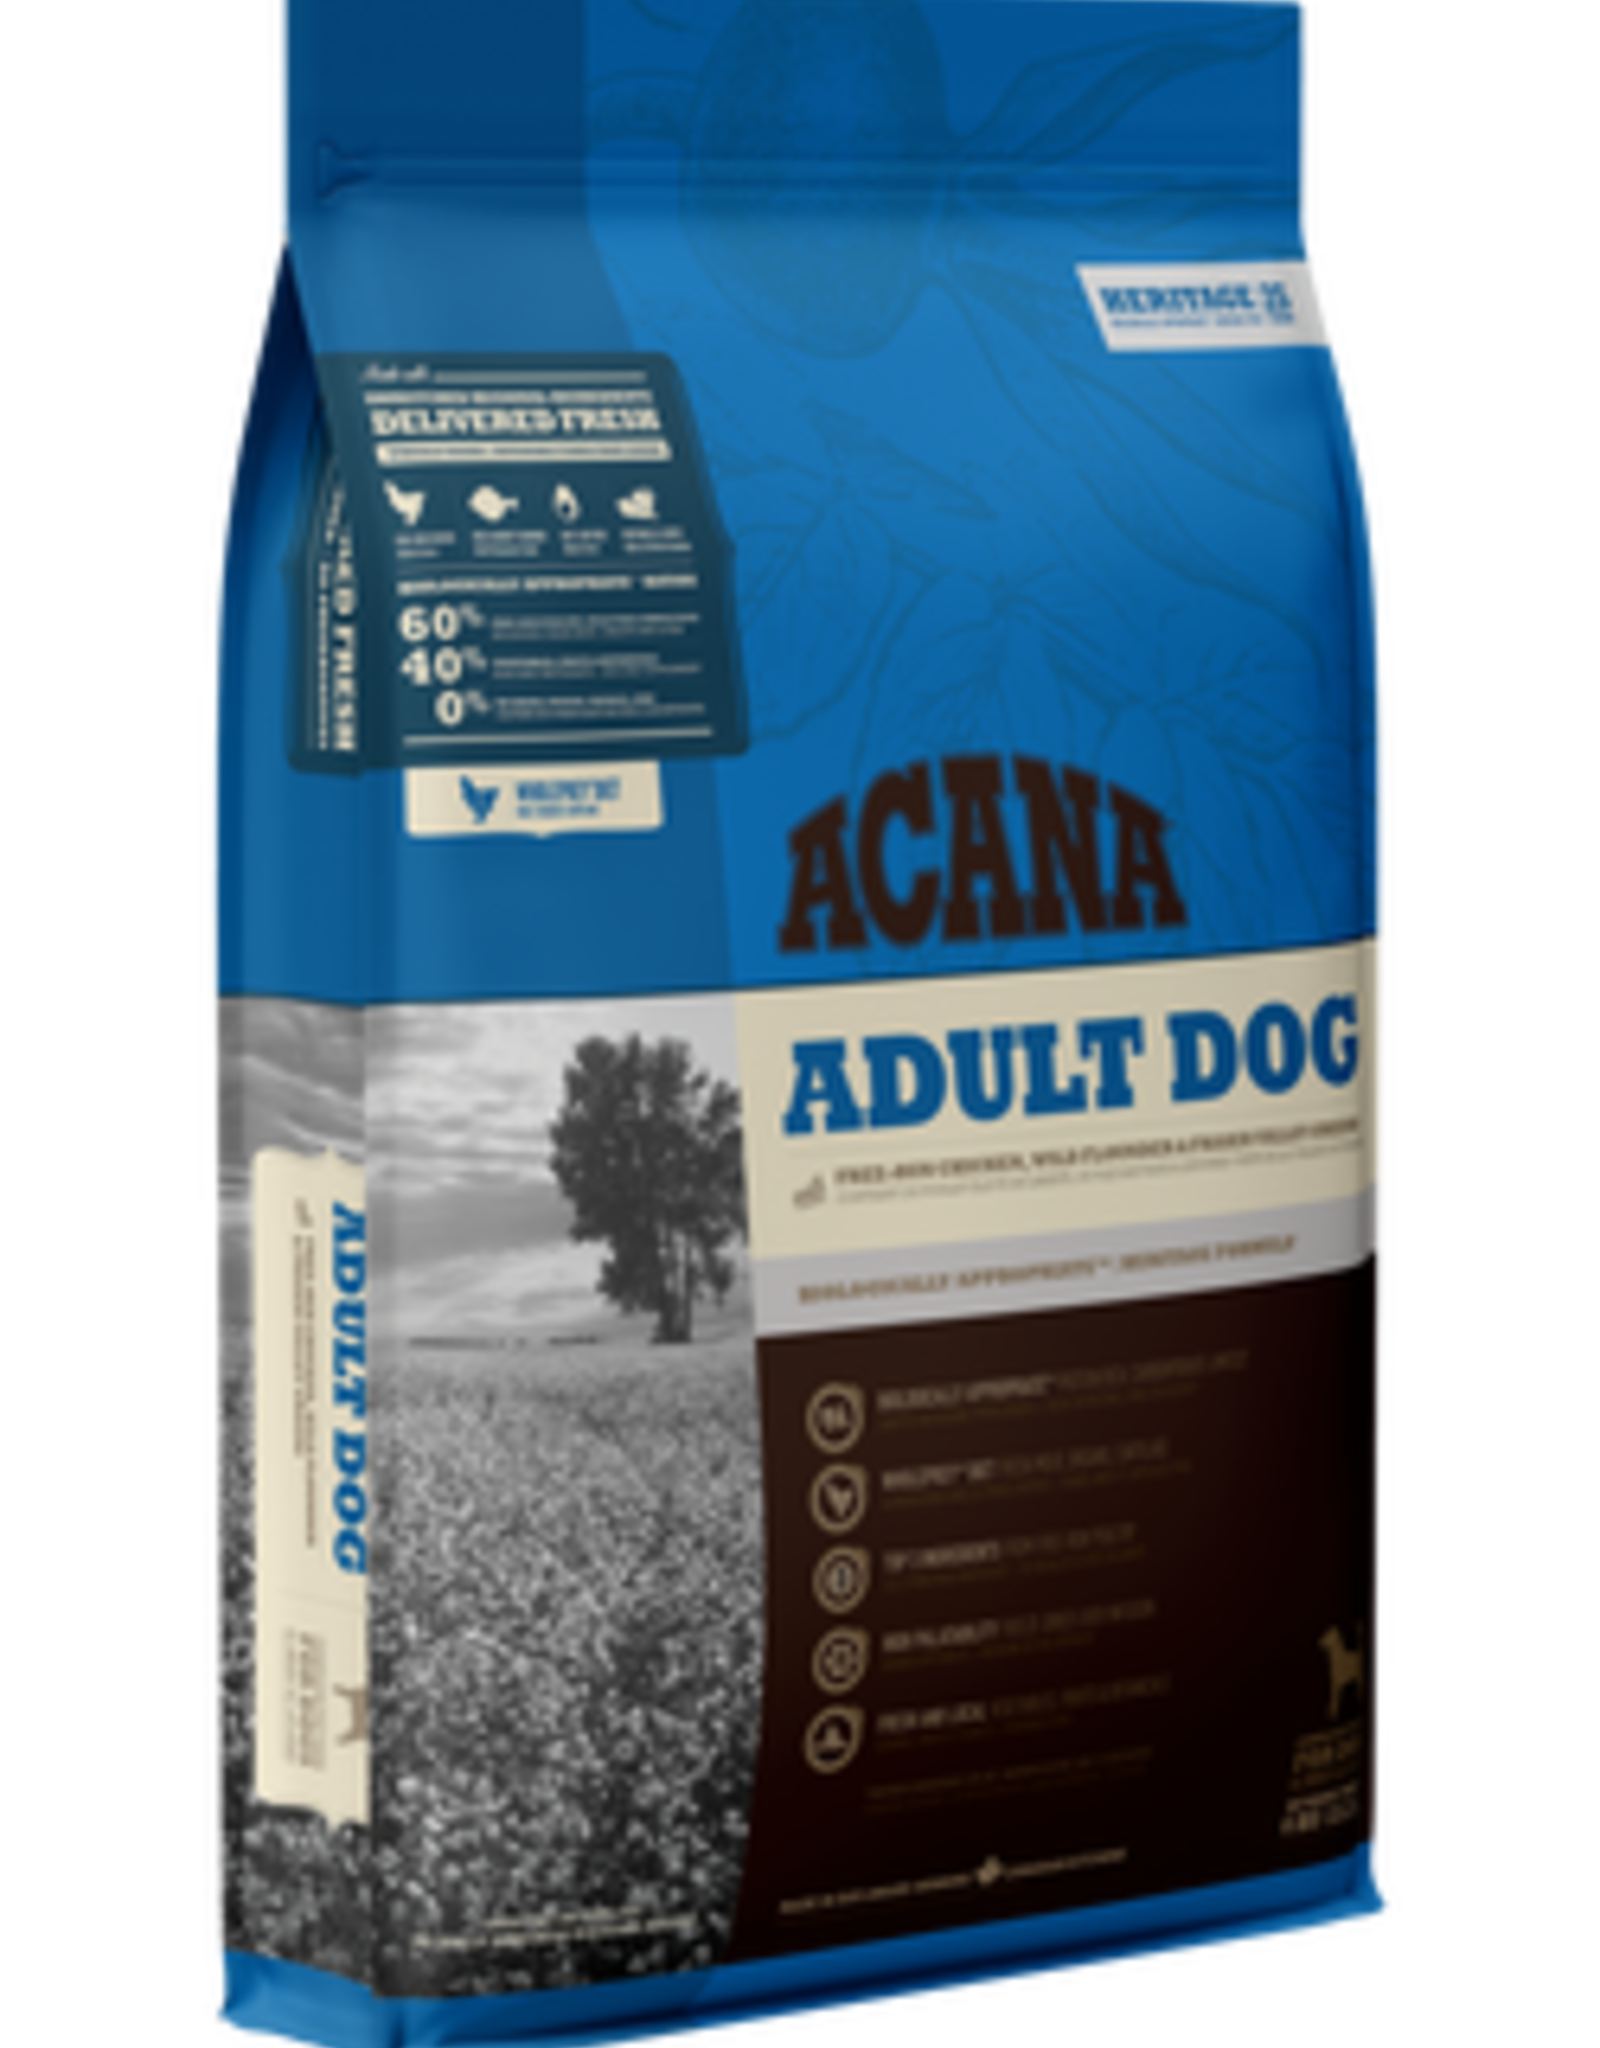 Acana Acana Adult Dog - Chicken, Flounder & Greens 340g